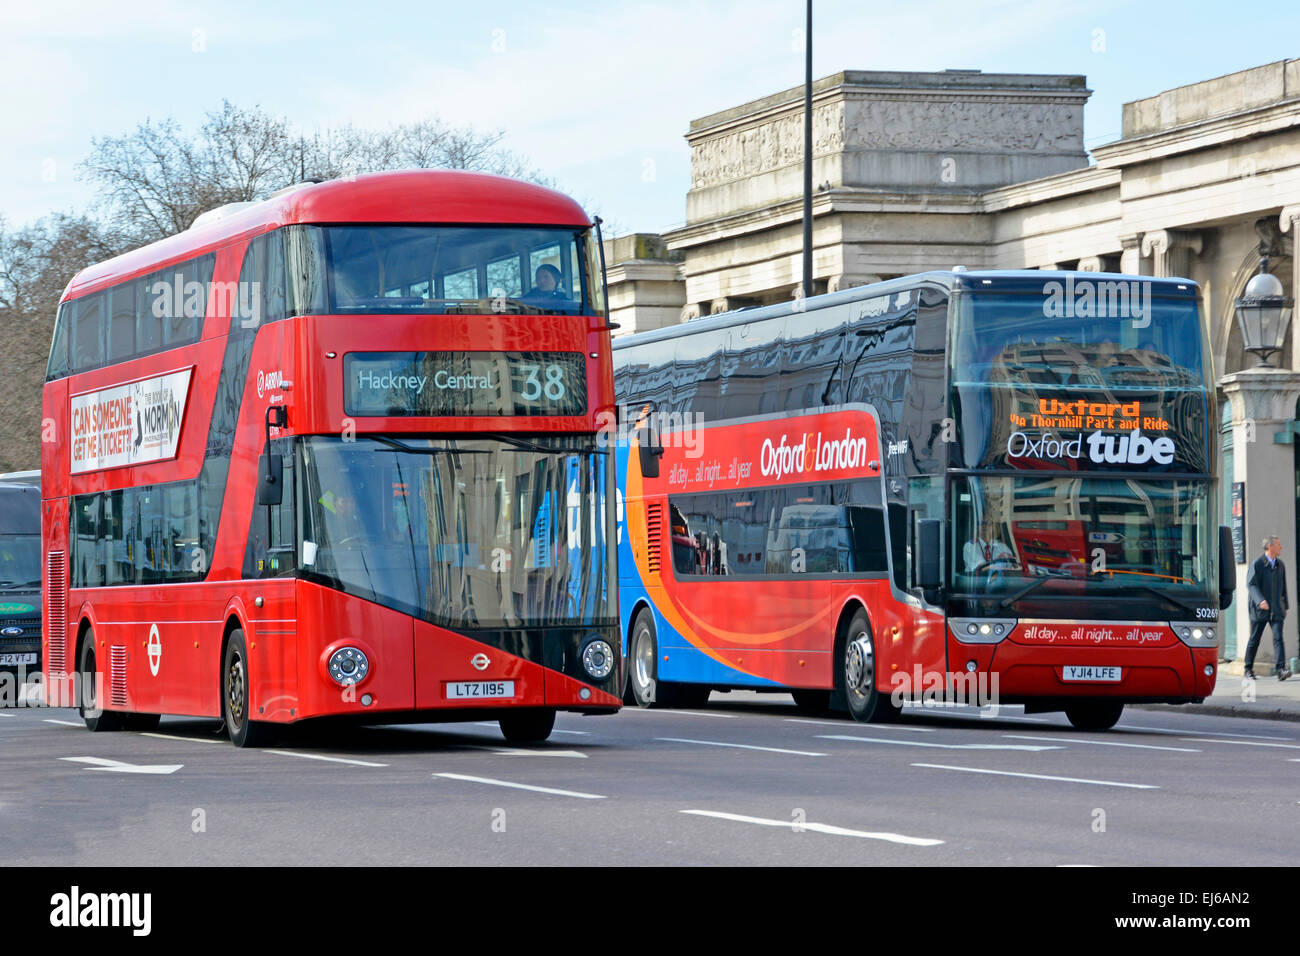 Regular London new Boris routemaster bus on local route 34 alongside inter city London to Oxford coach service run - Stock Image